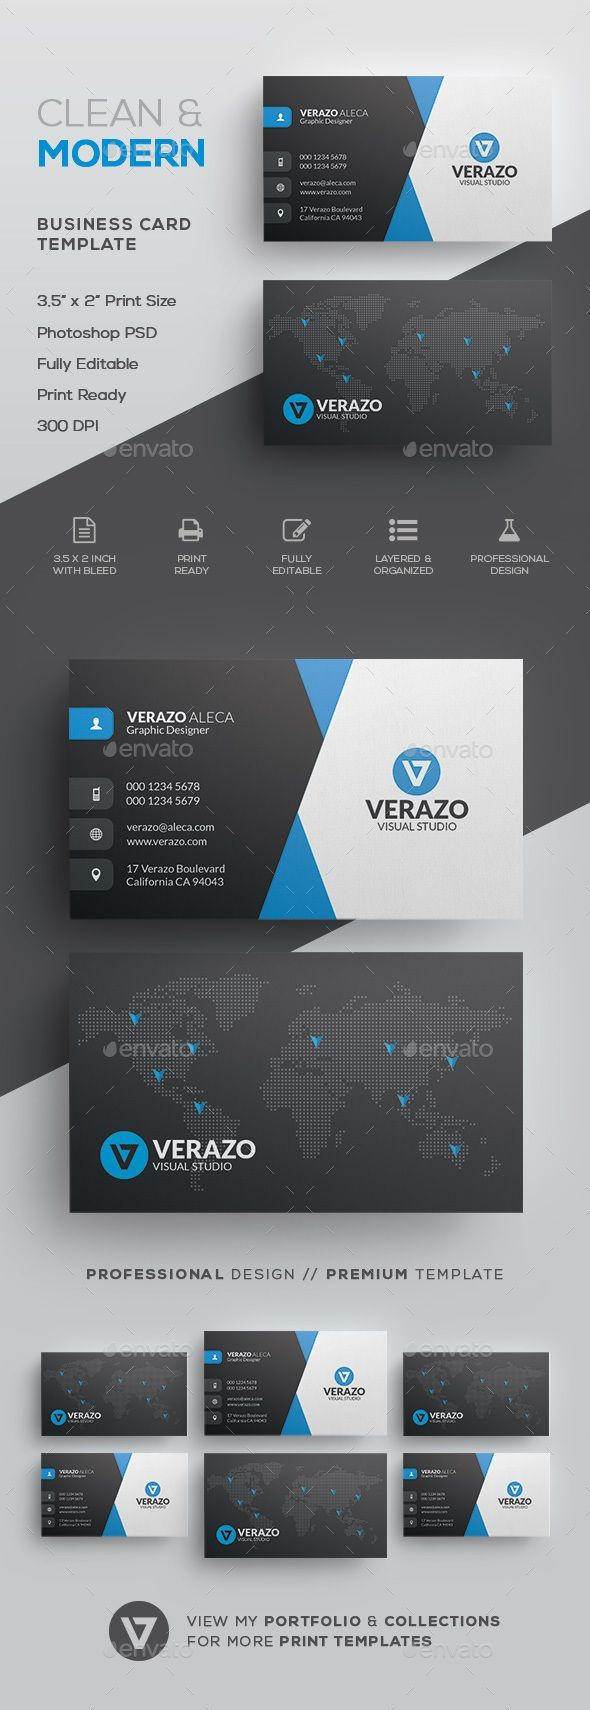 Card Templates For Word Templates  Business Card Template Word Online Also Business Card .